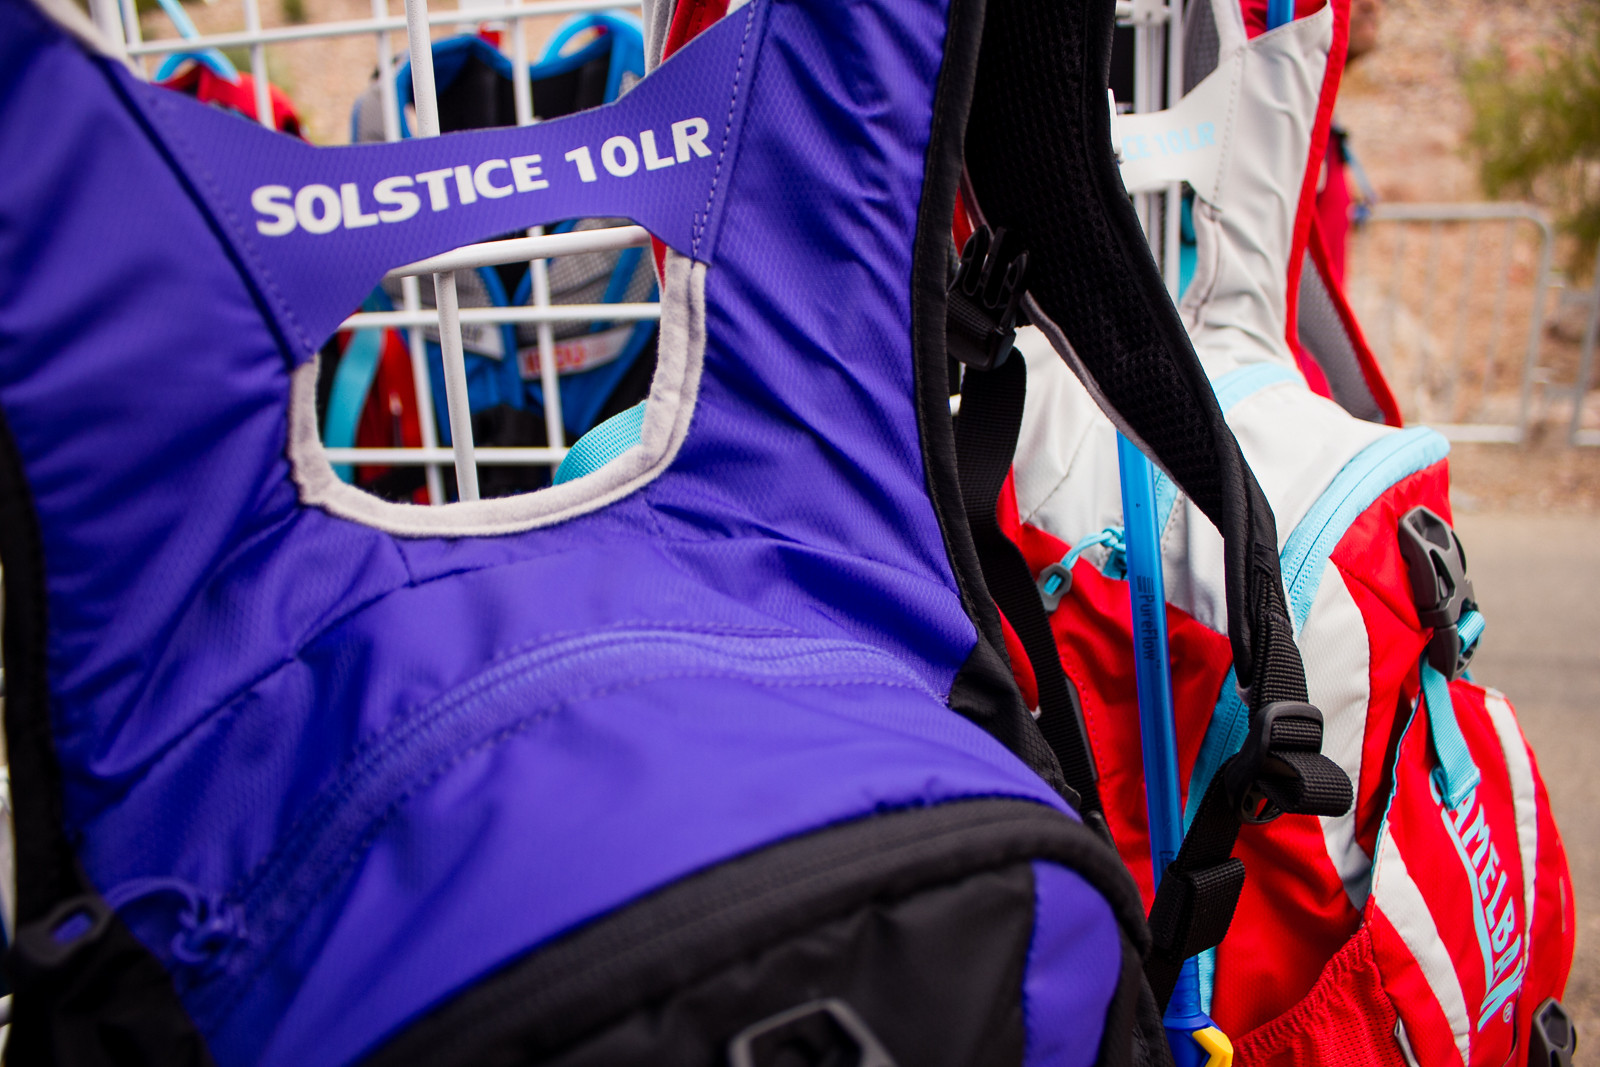 CamelBak Women's Solstice and Skyline Packs - 2016 Women's Bikes and Gear at Interbike - Mountain Biking Pictures - Vital MTB